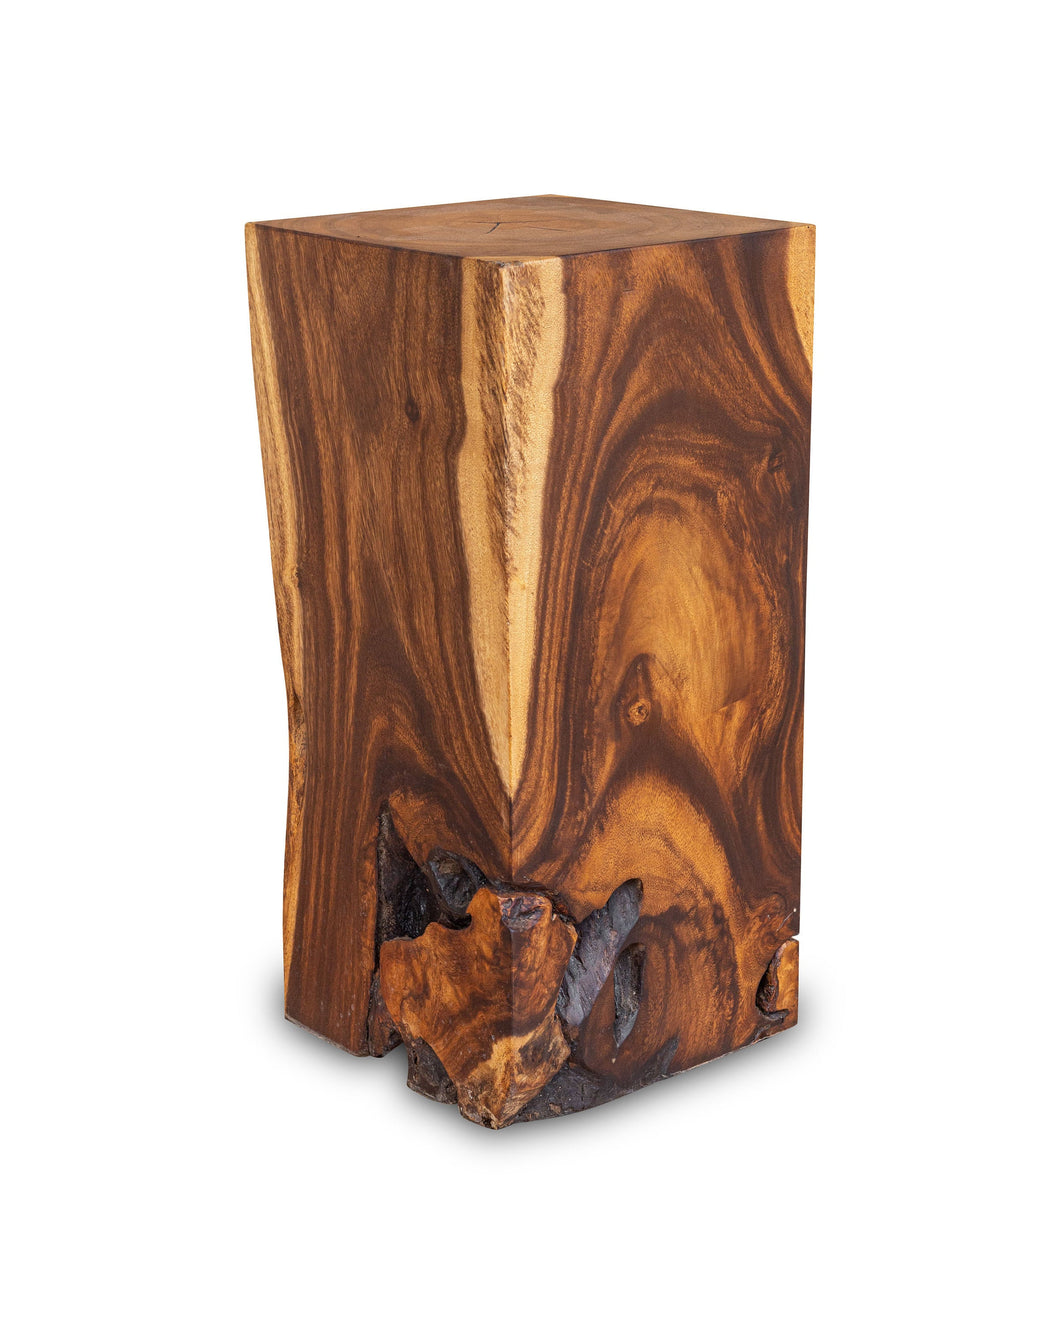 Square Solid Acacia Wood Side Table, Brown Natural Tree Stump Stool or End Table #B2